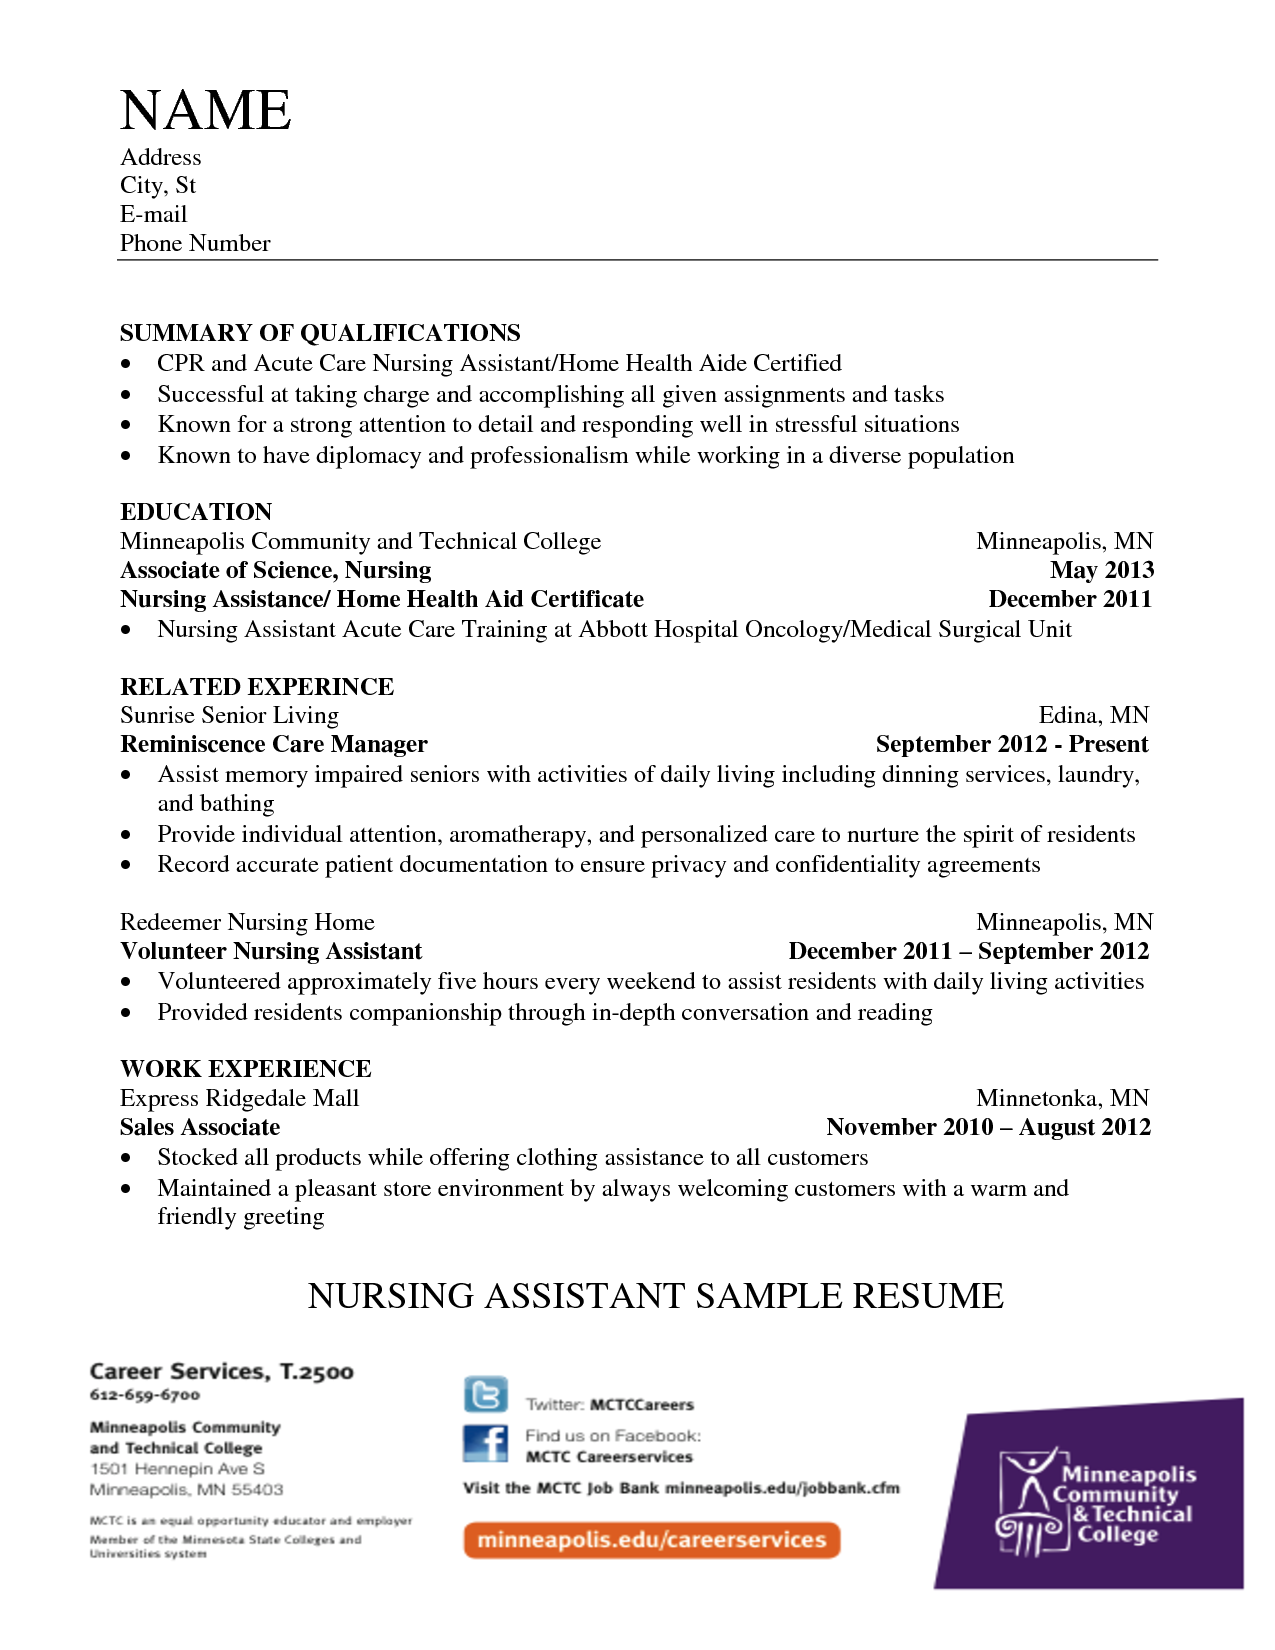 Nurses Resume Format Samples Home Health Nursing Assistant Resume Sample Resume